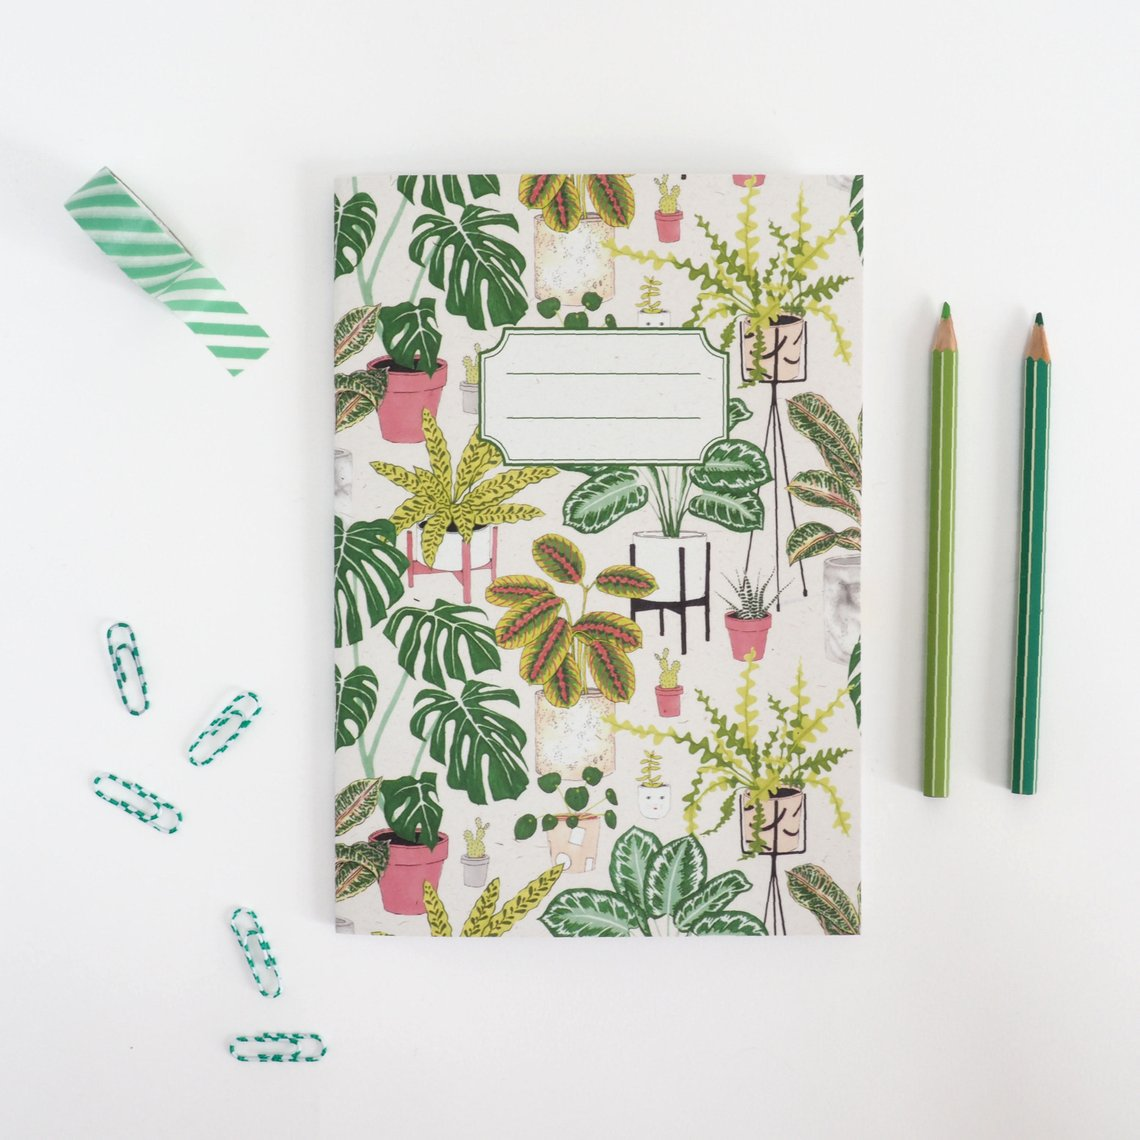 Houseplant notebook , £3 from Jacqueline Colley.